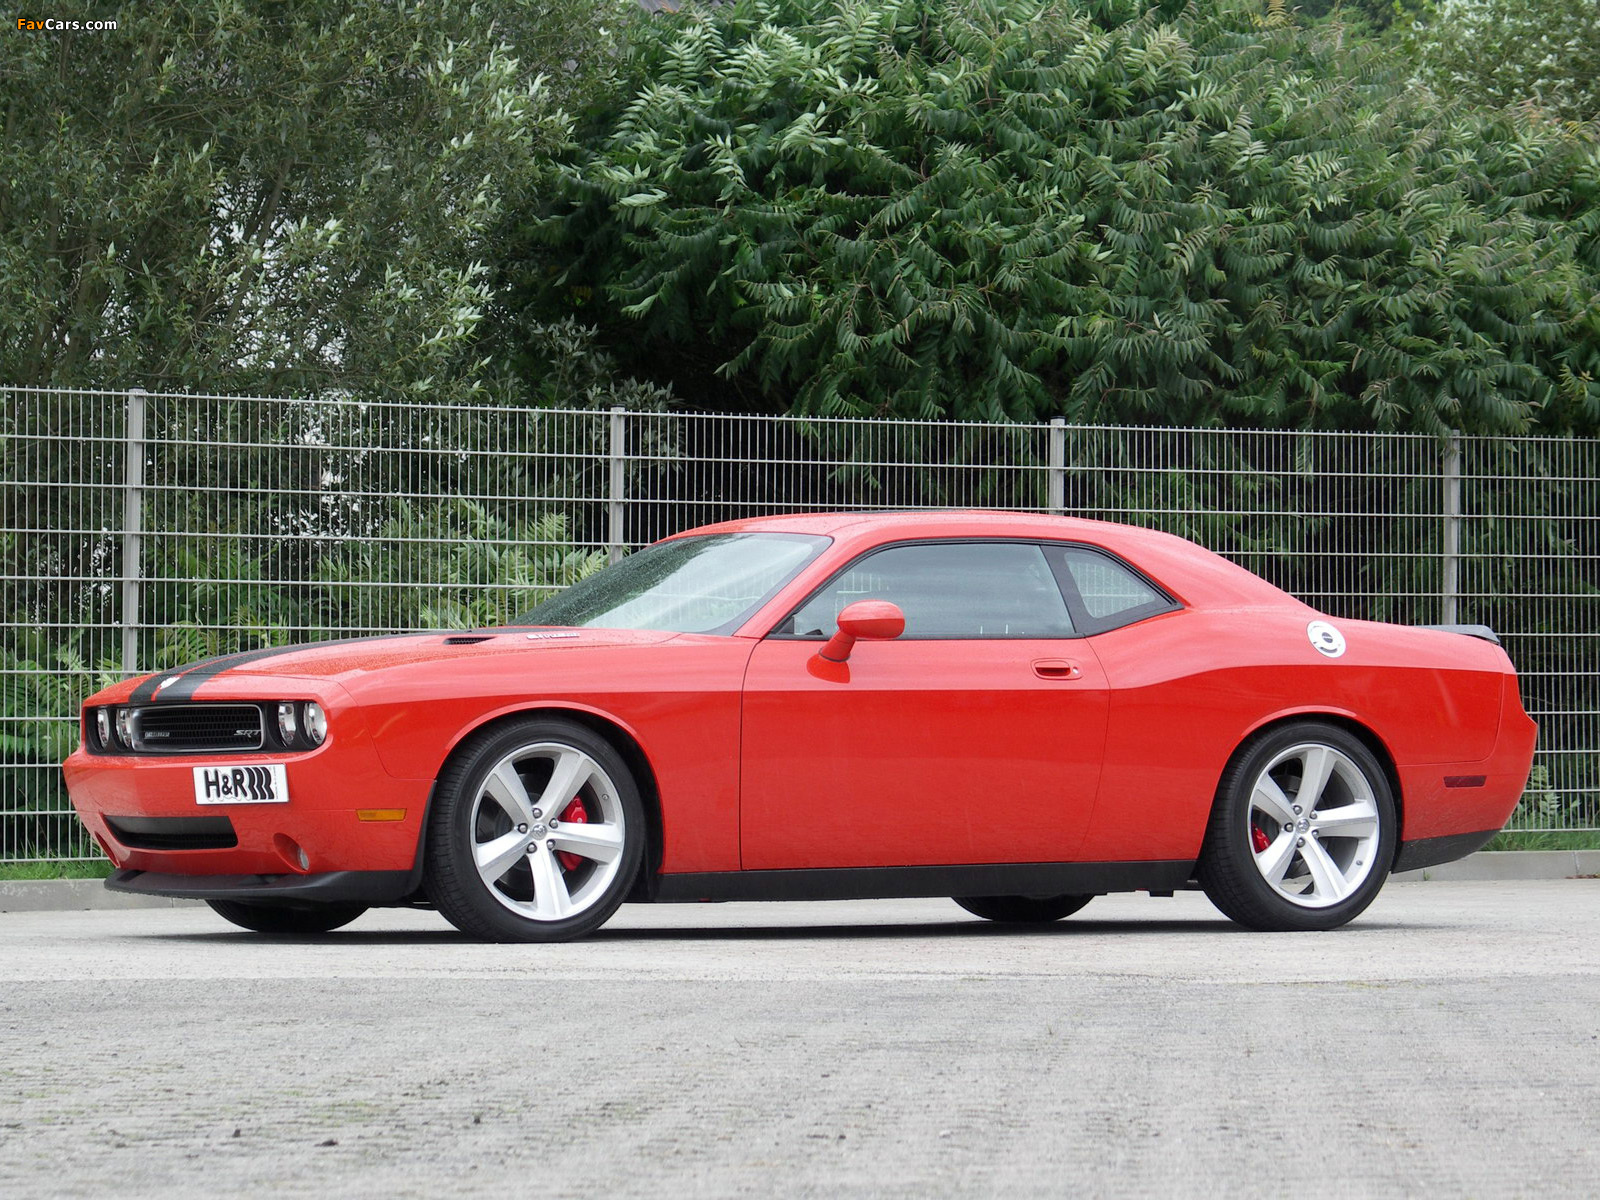 H&R Dodge Challenger SRT8 (LC) 2008–10 photos (1600 x 1200)